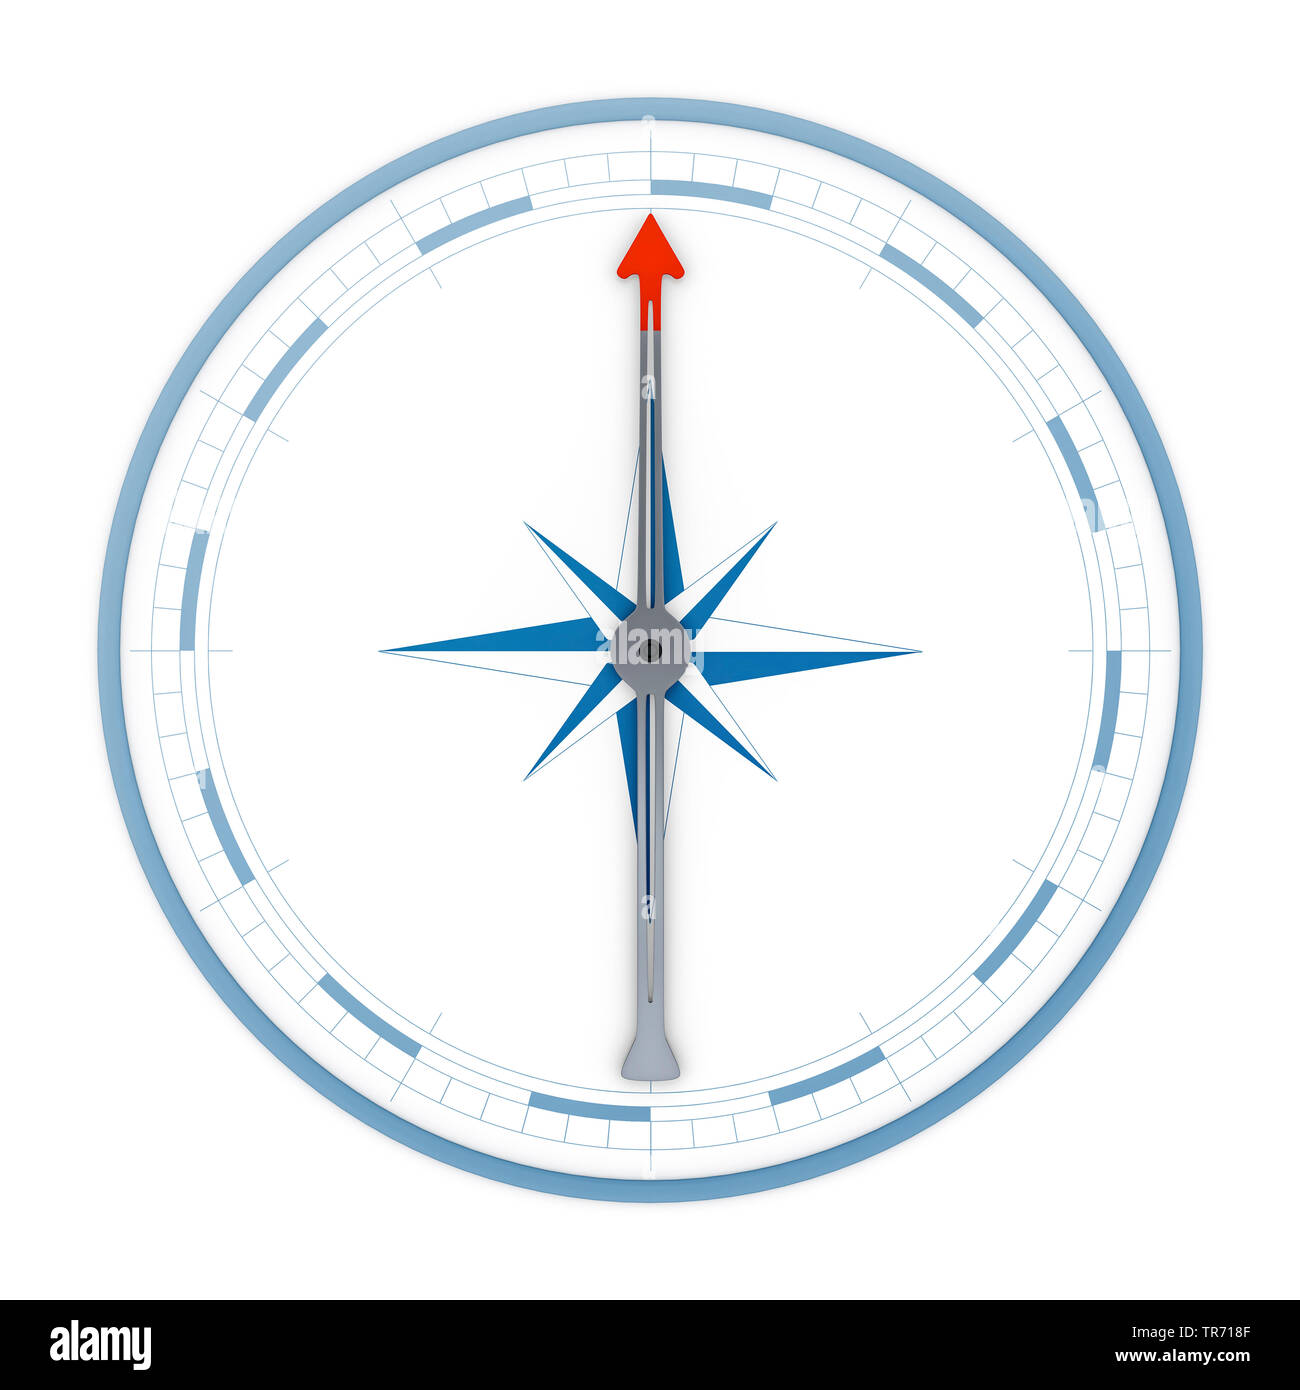 3D computer graphic, compass in weite without text arrow pointing up Stock Photo